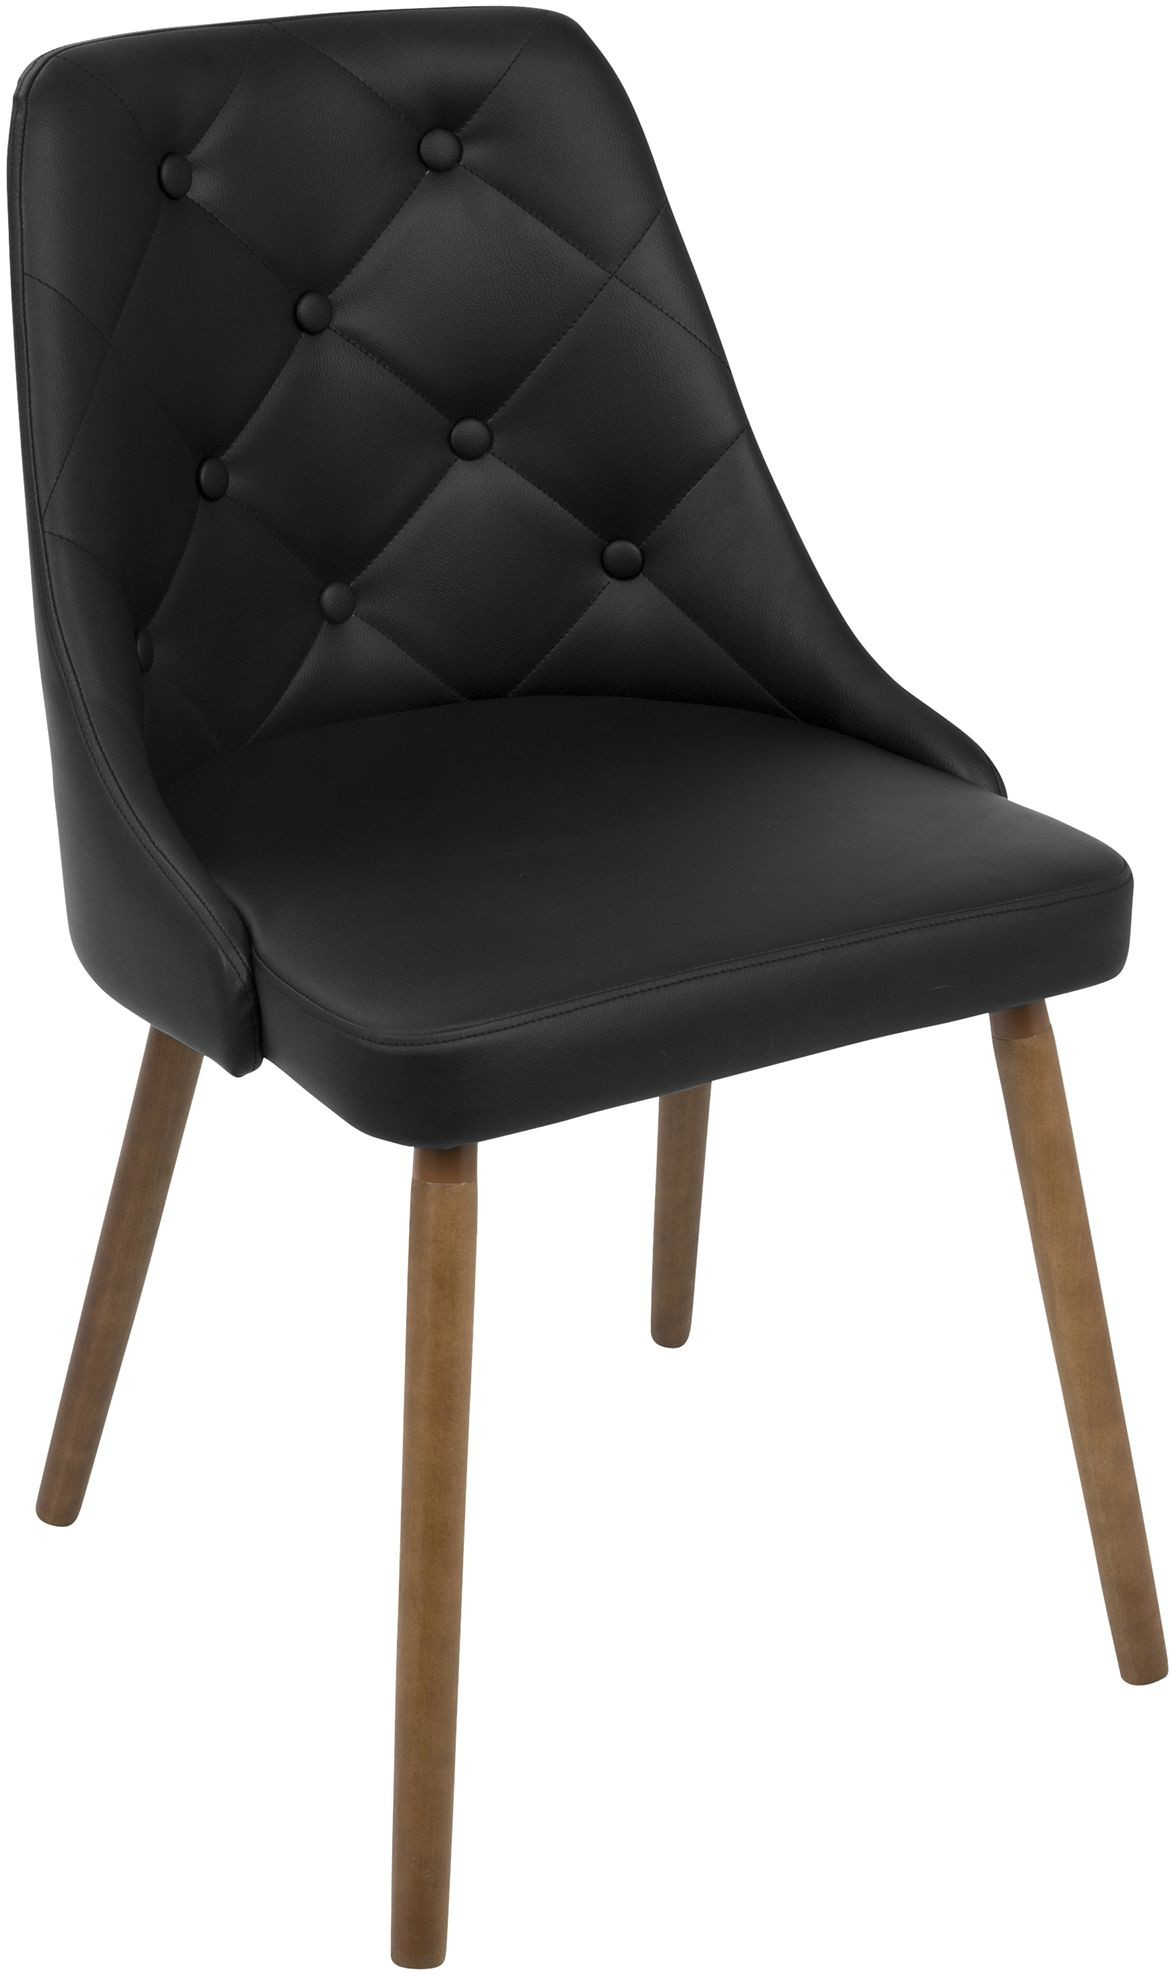 Leather Chairs Target Gianna Walnut And Black Dining Chair From Lumisource